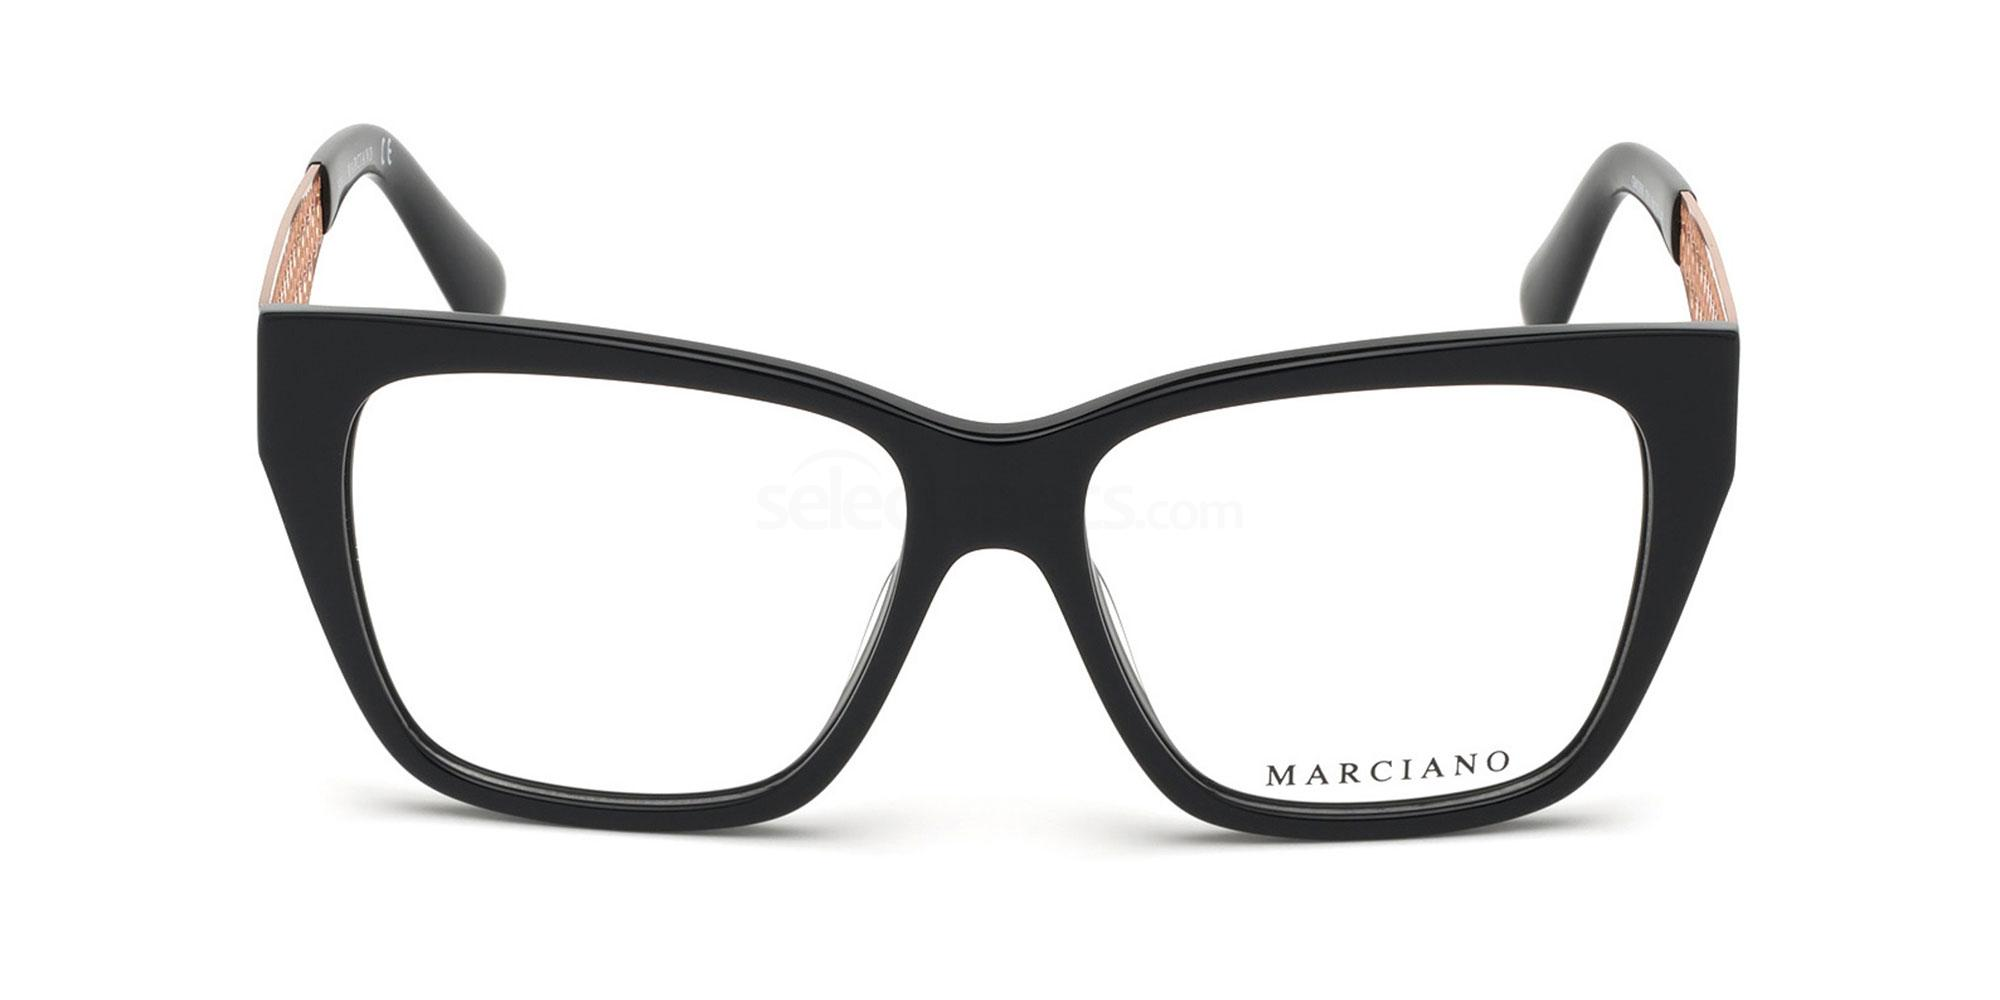 001 GM0356 Glasses, Guess by Marciano